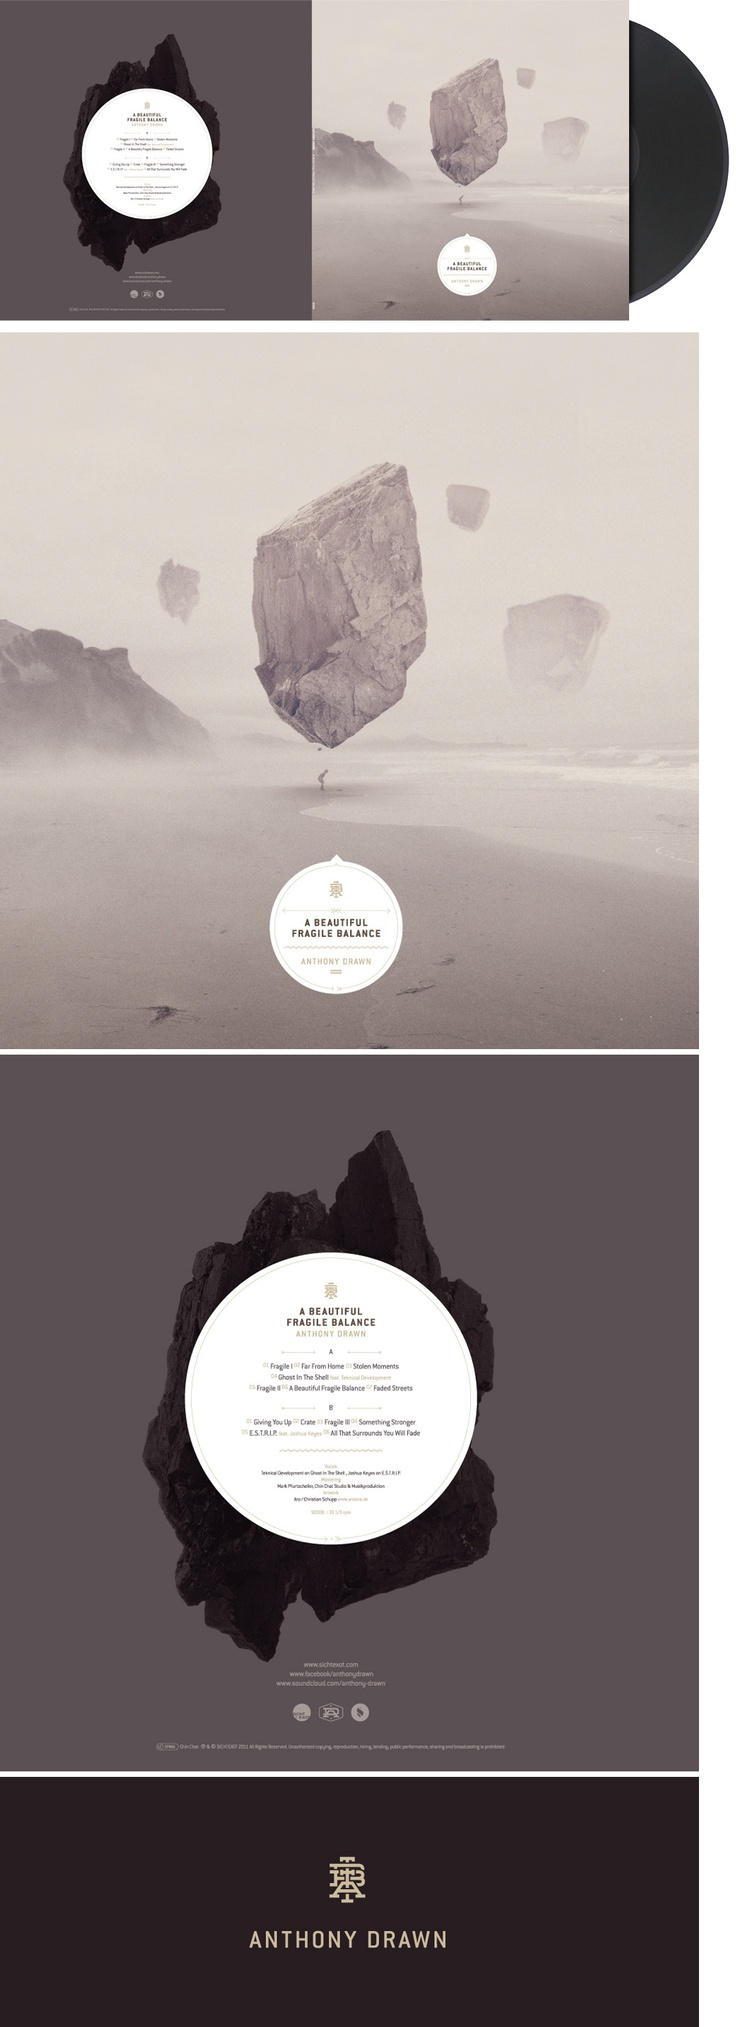 ARO / Christian Schupp - A beautiful fragile balance LP cover (Anthony Drawn) #graphic #design